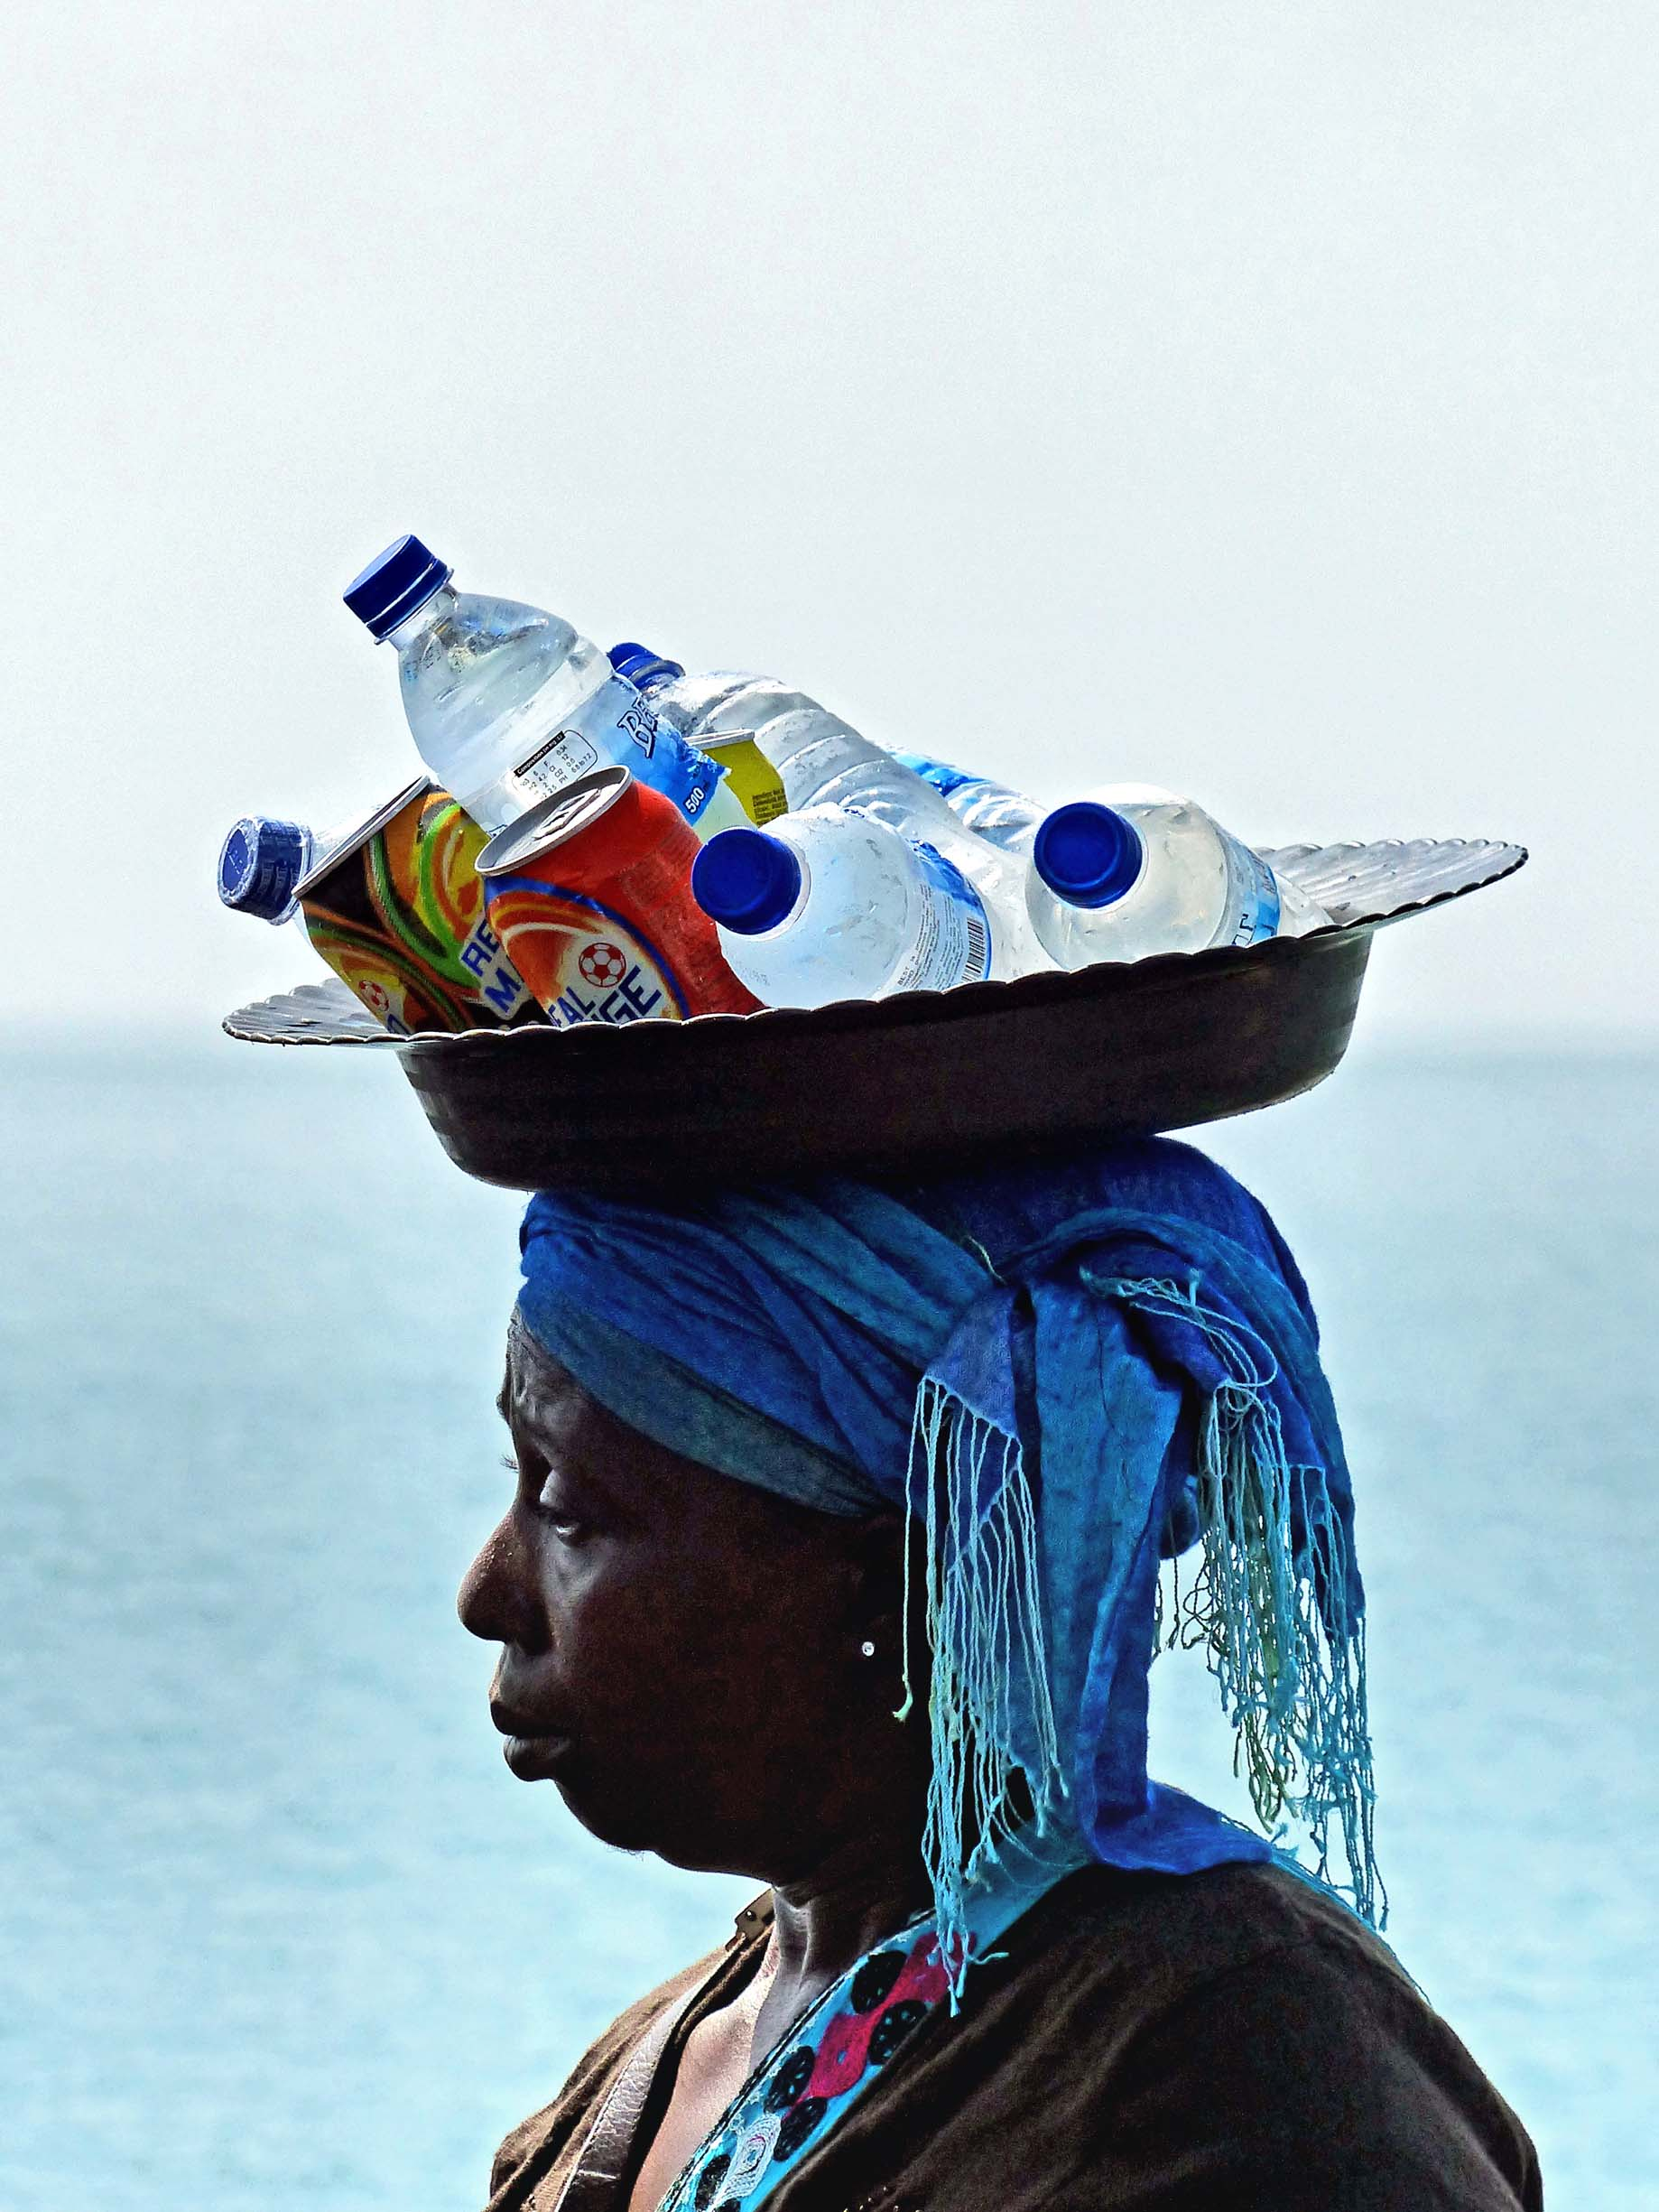 Lady with tray of drinks bottles and cans on her head